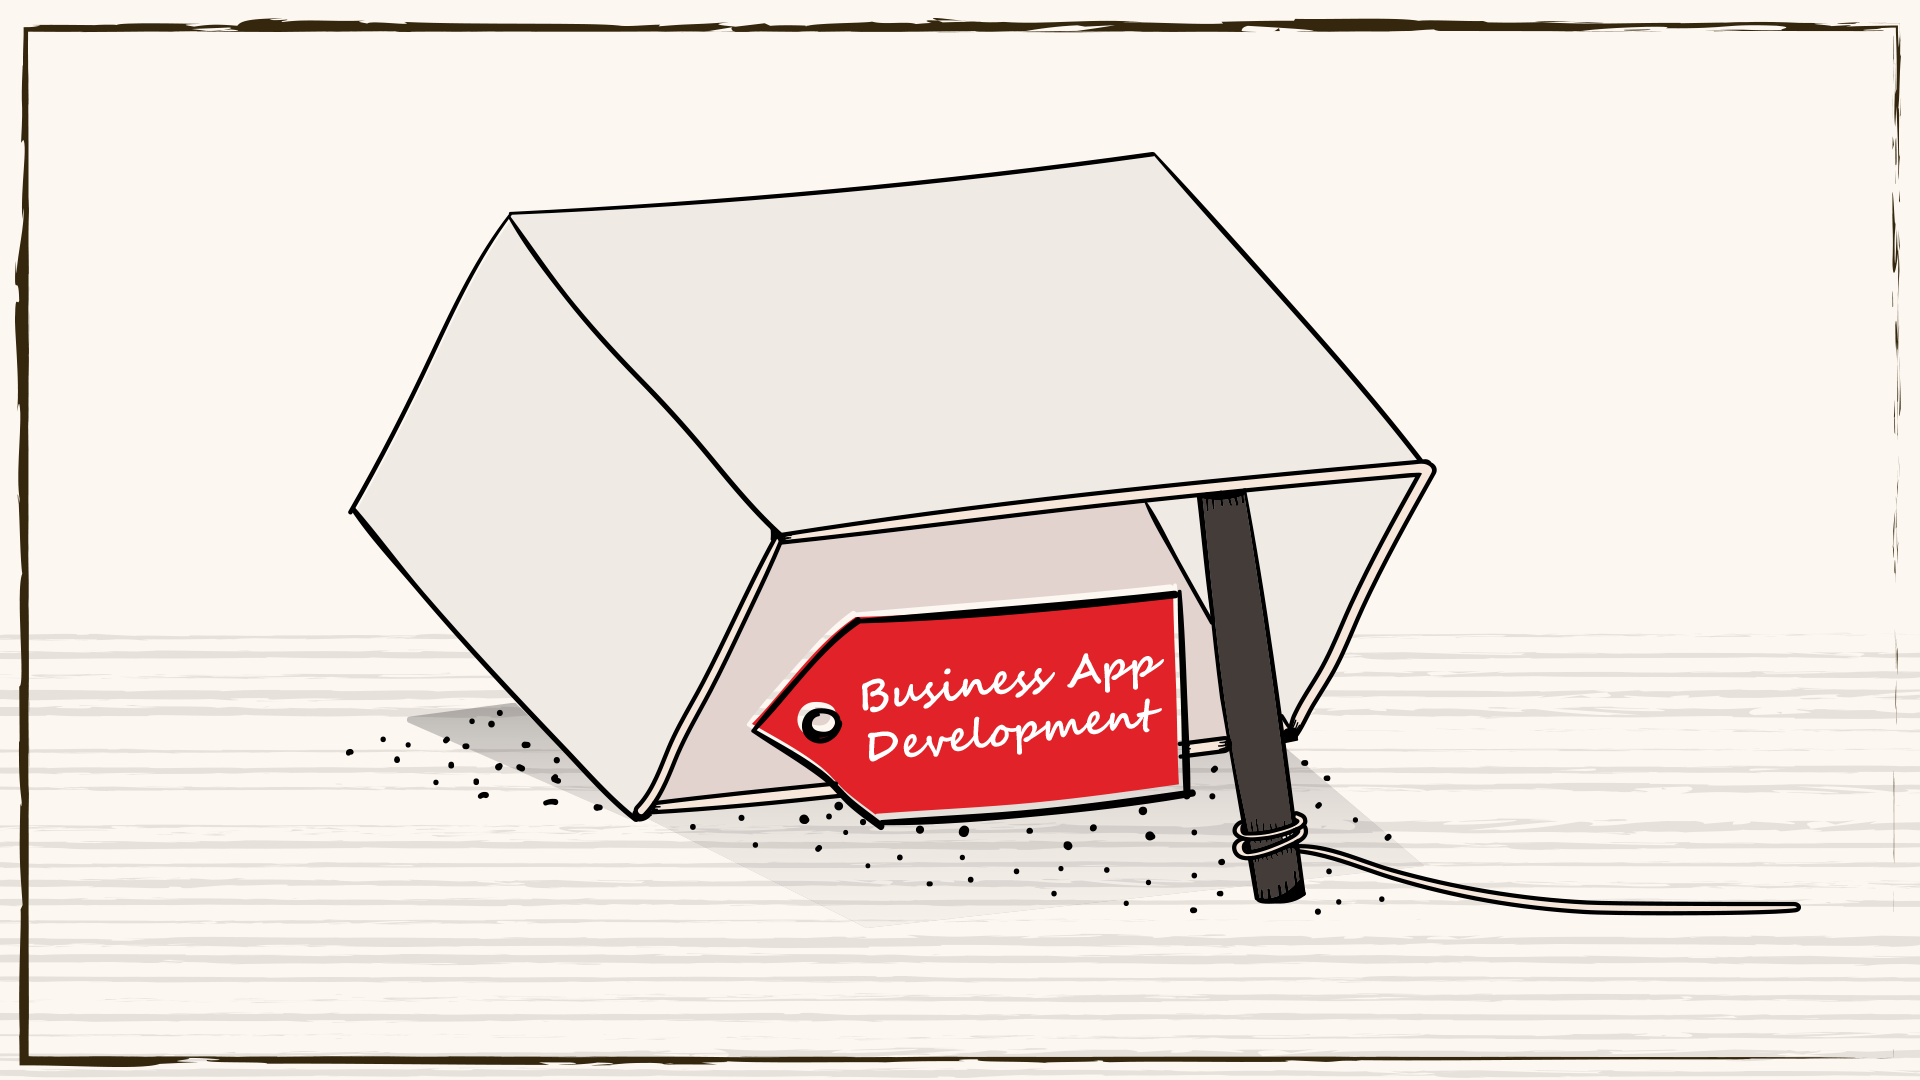 8 Pitfalls to Avoid While Business App Development